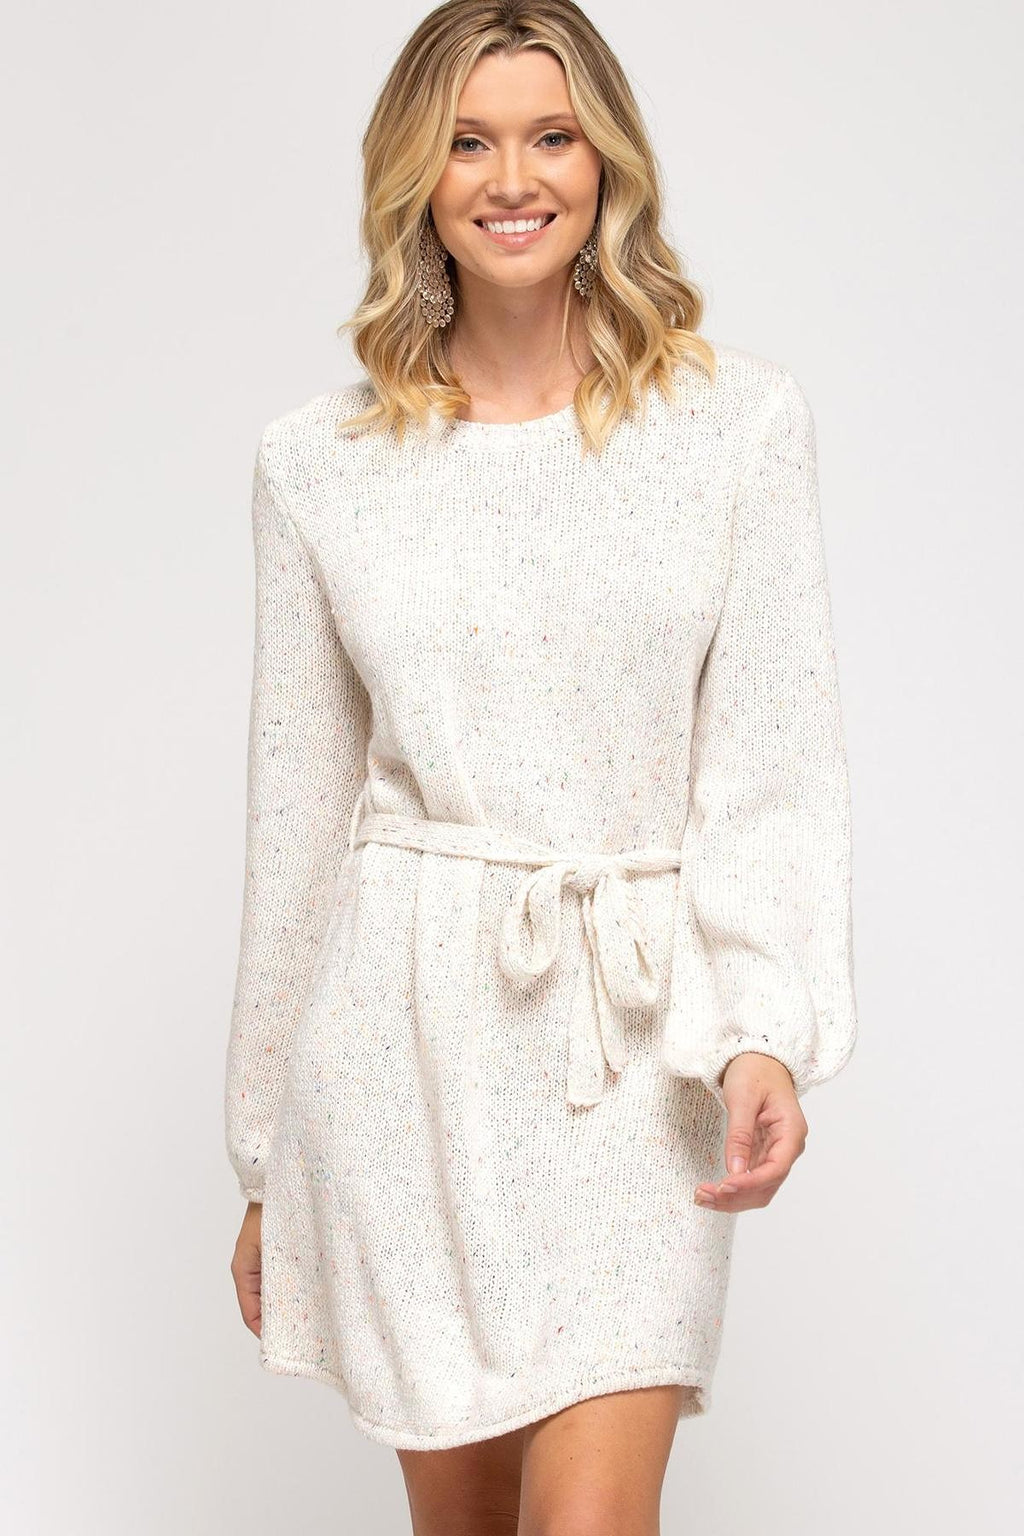 SUNLIGHT KNIT SWEATER DRESS